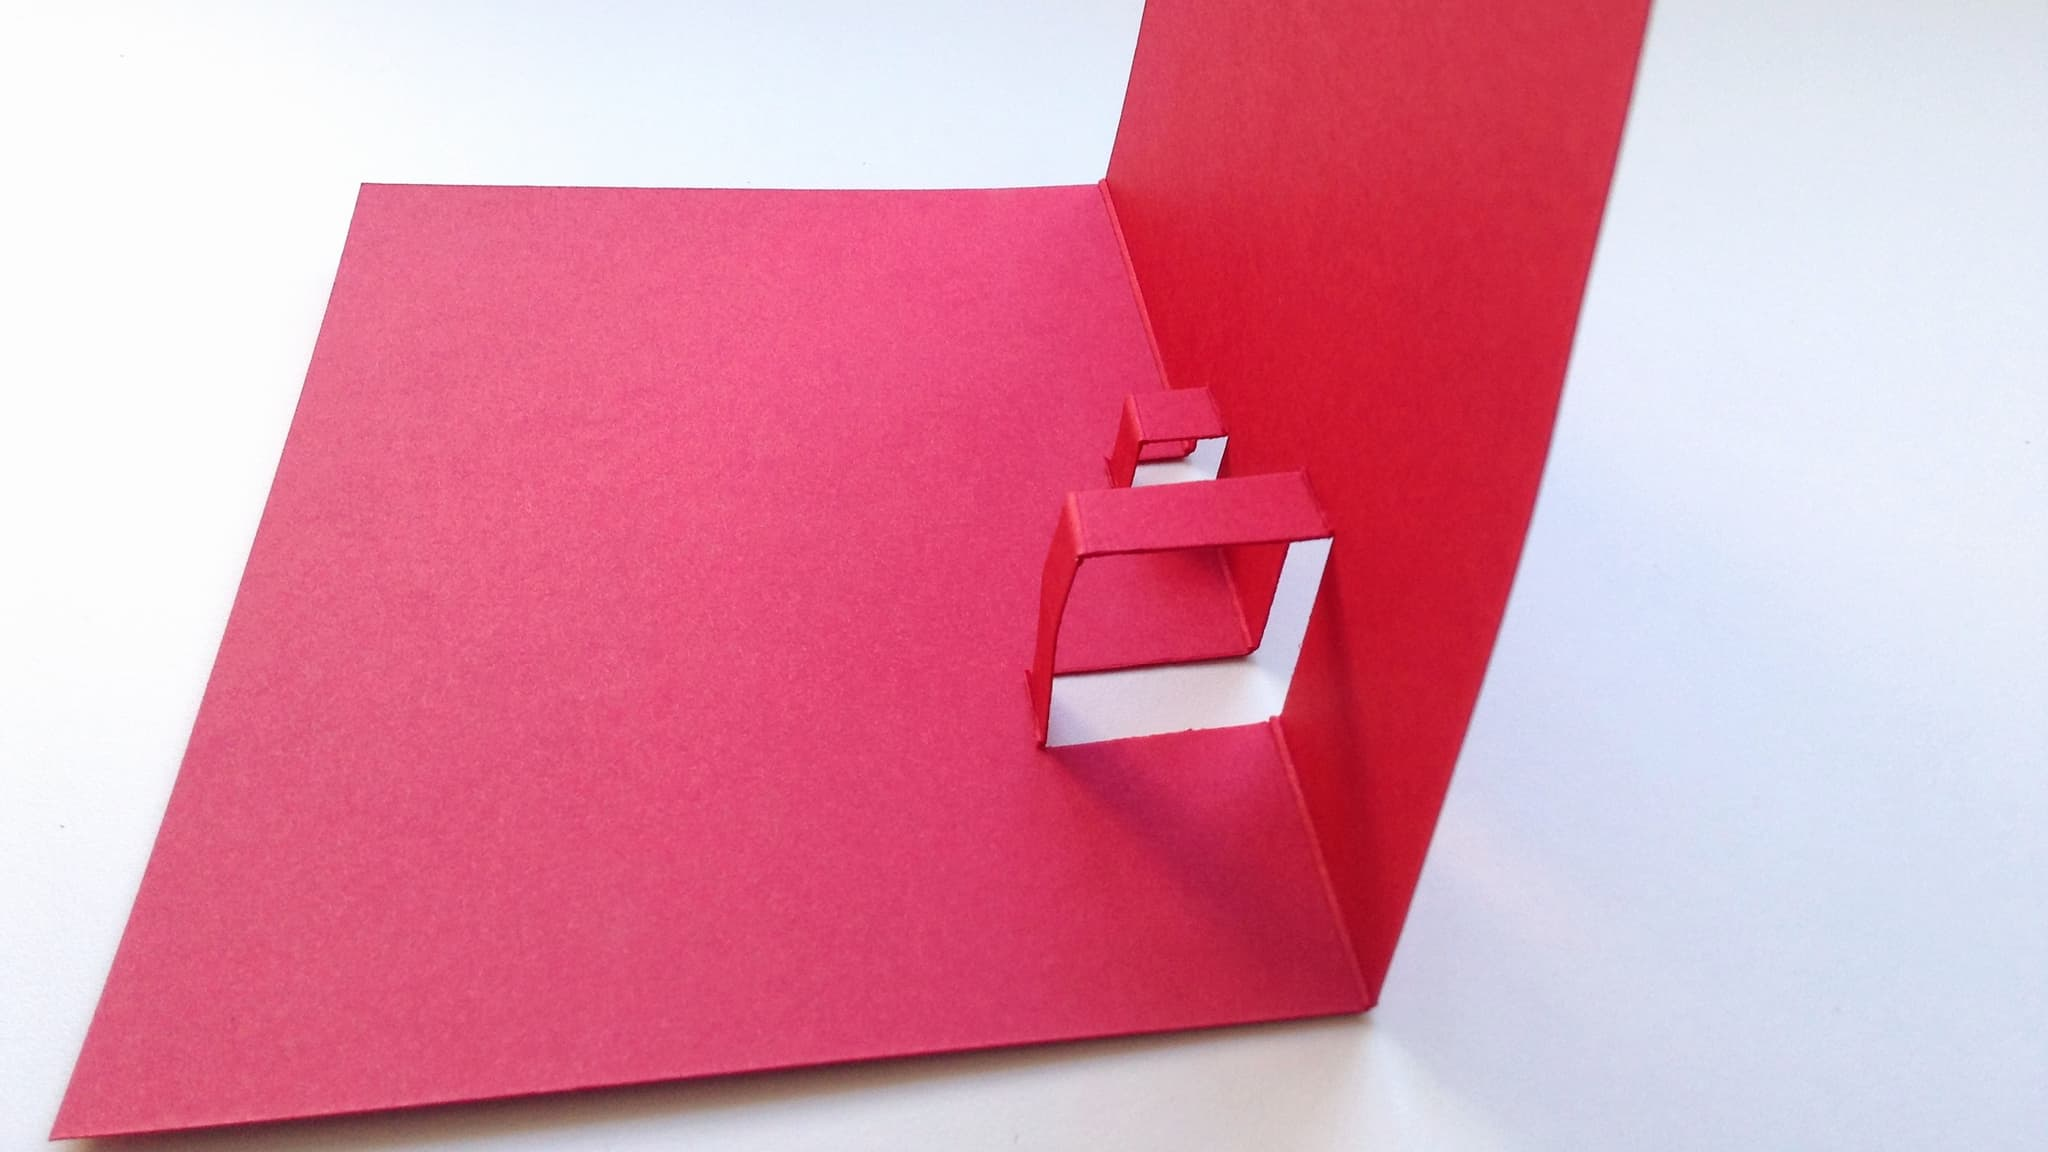 Fold the pop-out supports from the Valentine's card